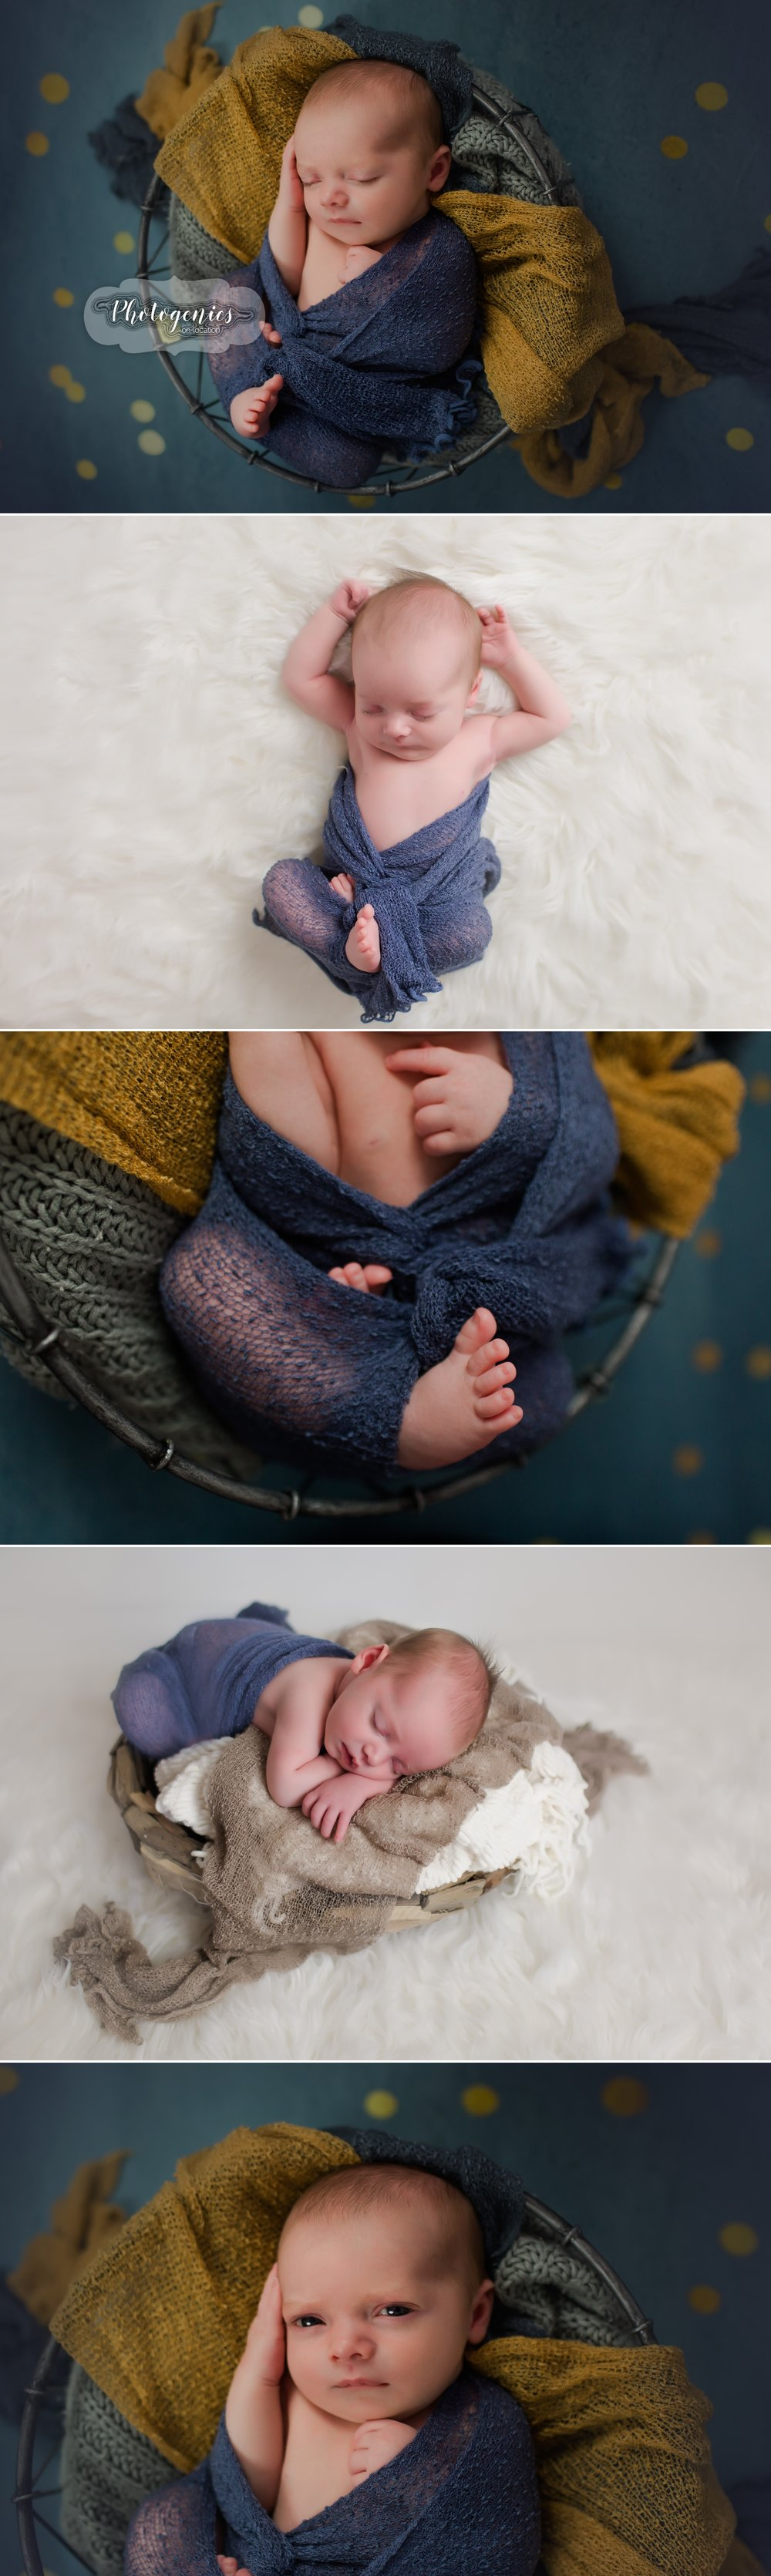 newborn_boy_photography_siblings_poses_ideas_hats_props_little_brother 2